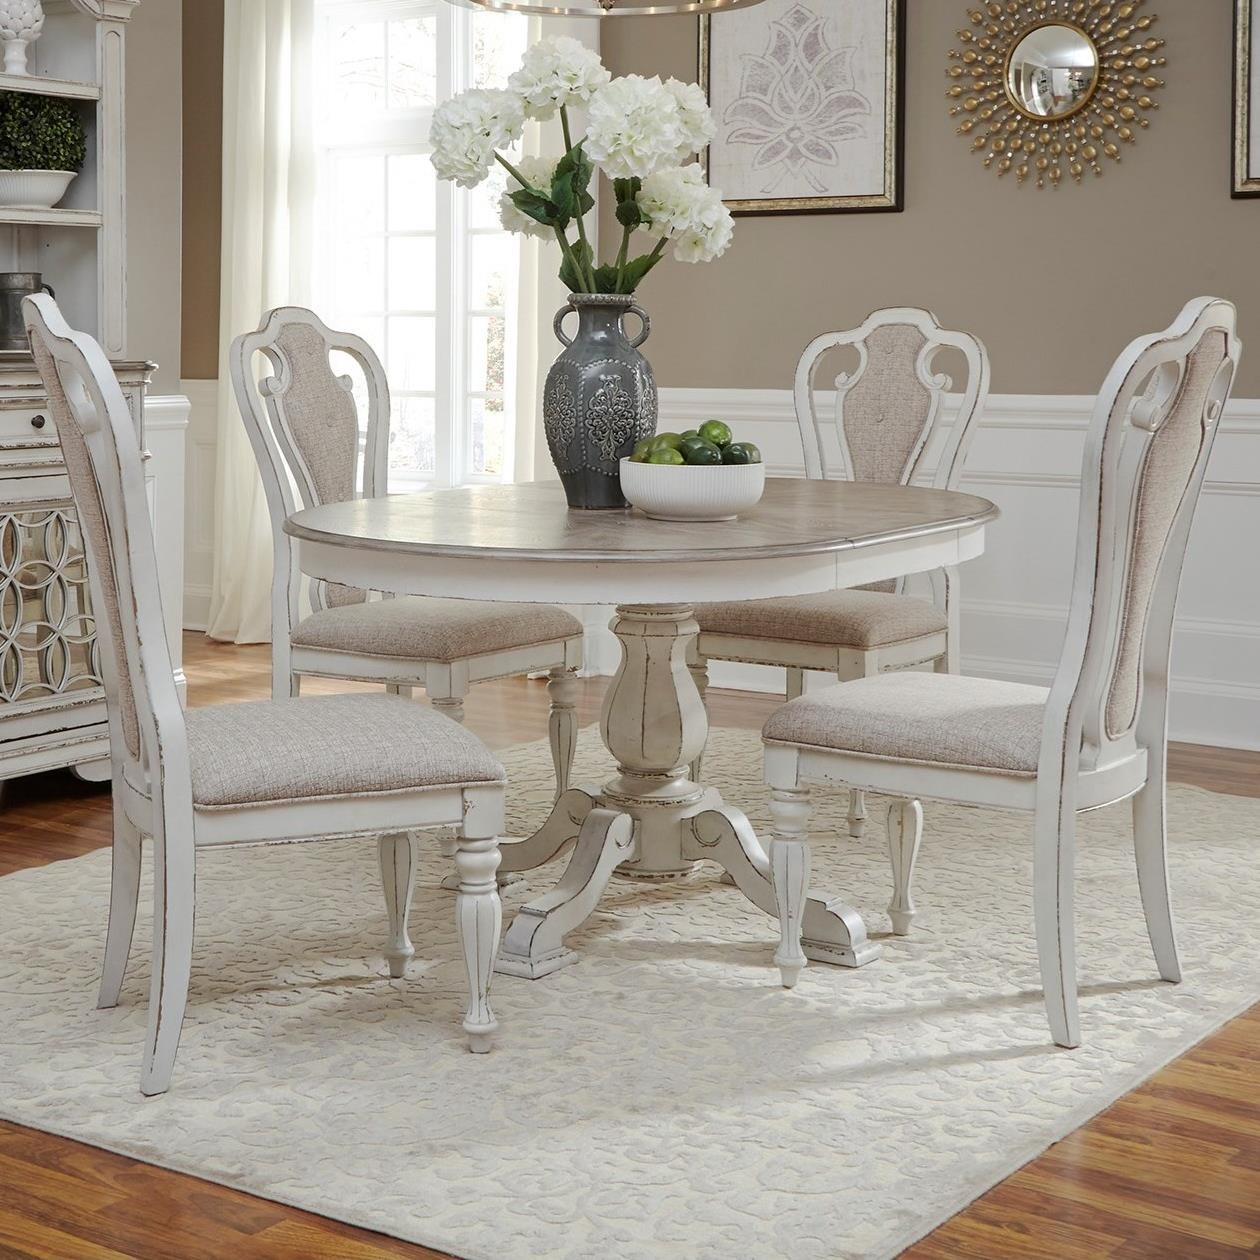 Liberty Furniture Magnolia Manor 5 Piece Table Set - Item Number: 244-DR-5PED